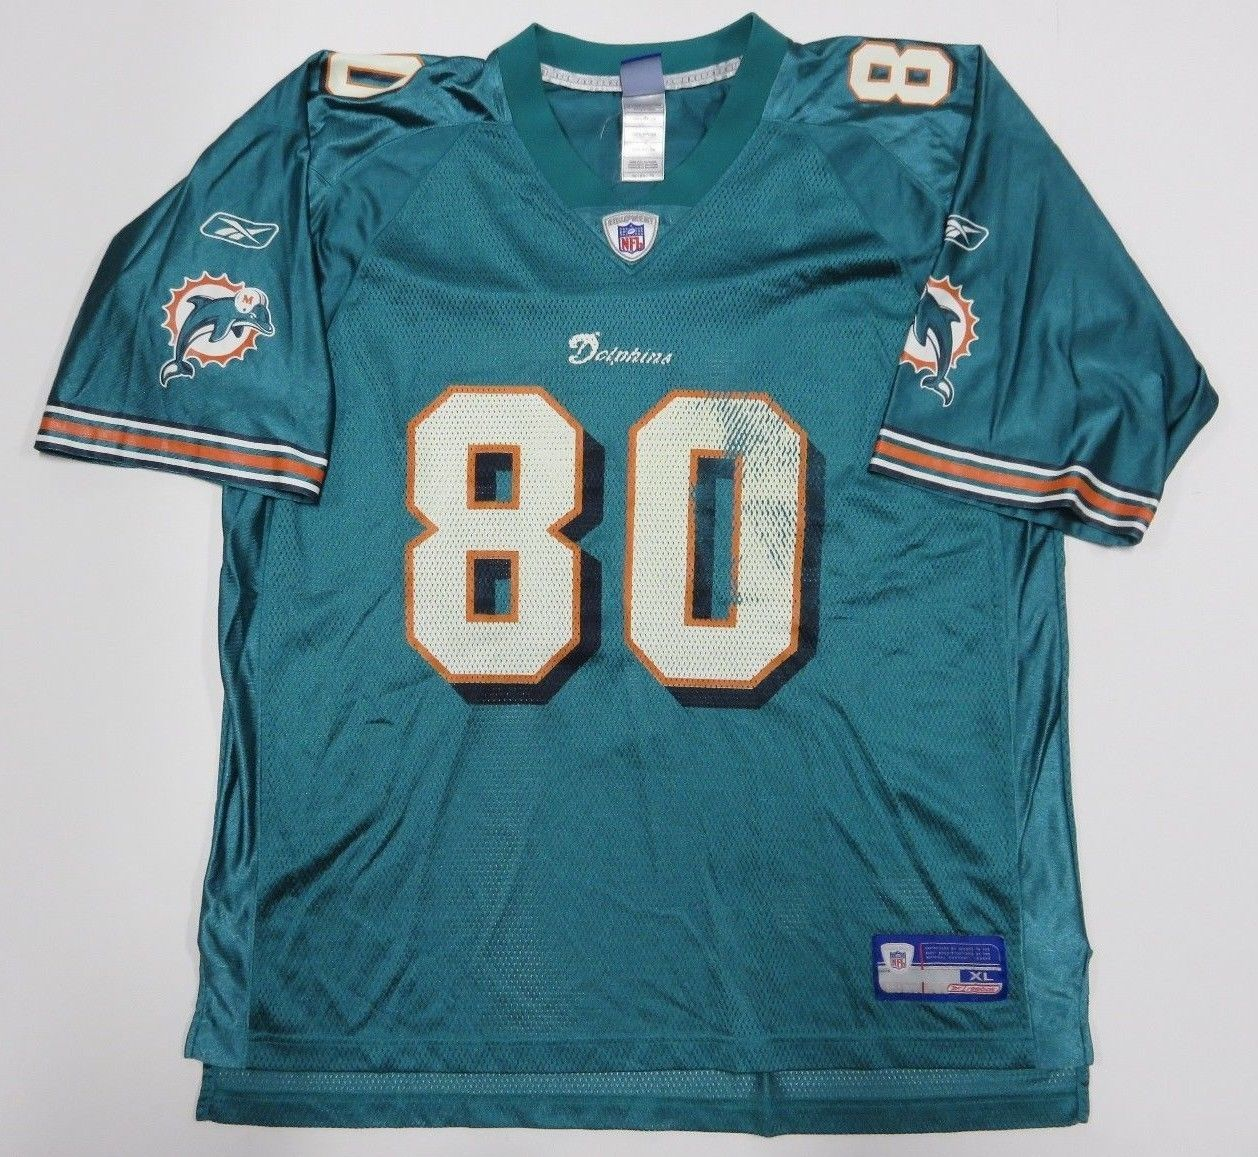 4136bfd15d6 Nfl Reebok David Boston #80 Miami Dolphins and 50 similar items